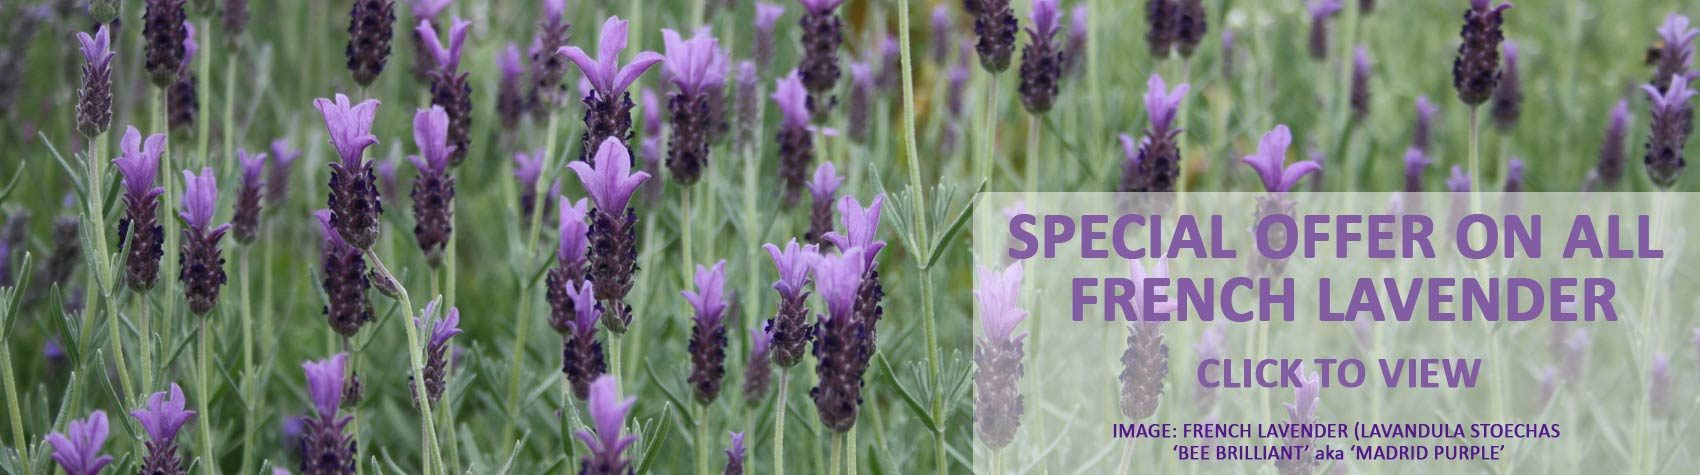 SALE - French Lavender - Stoechas